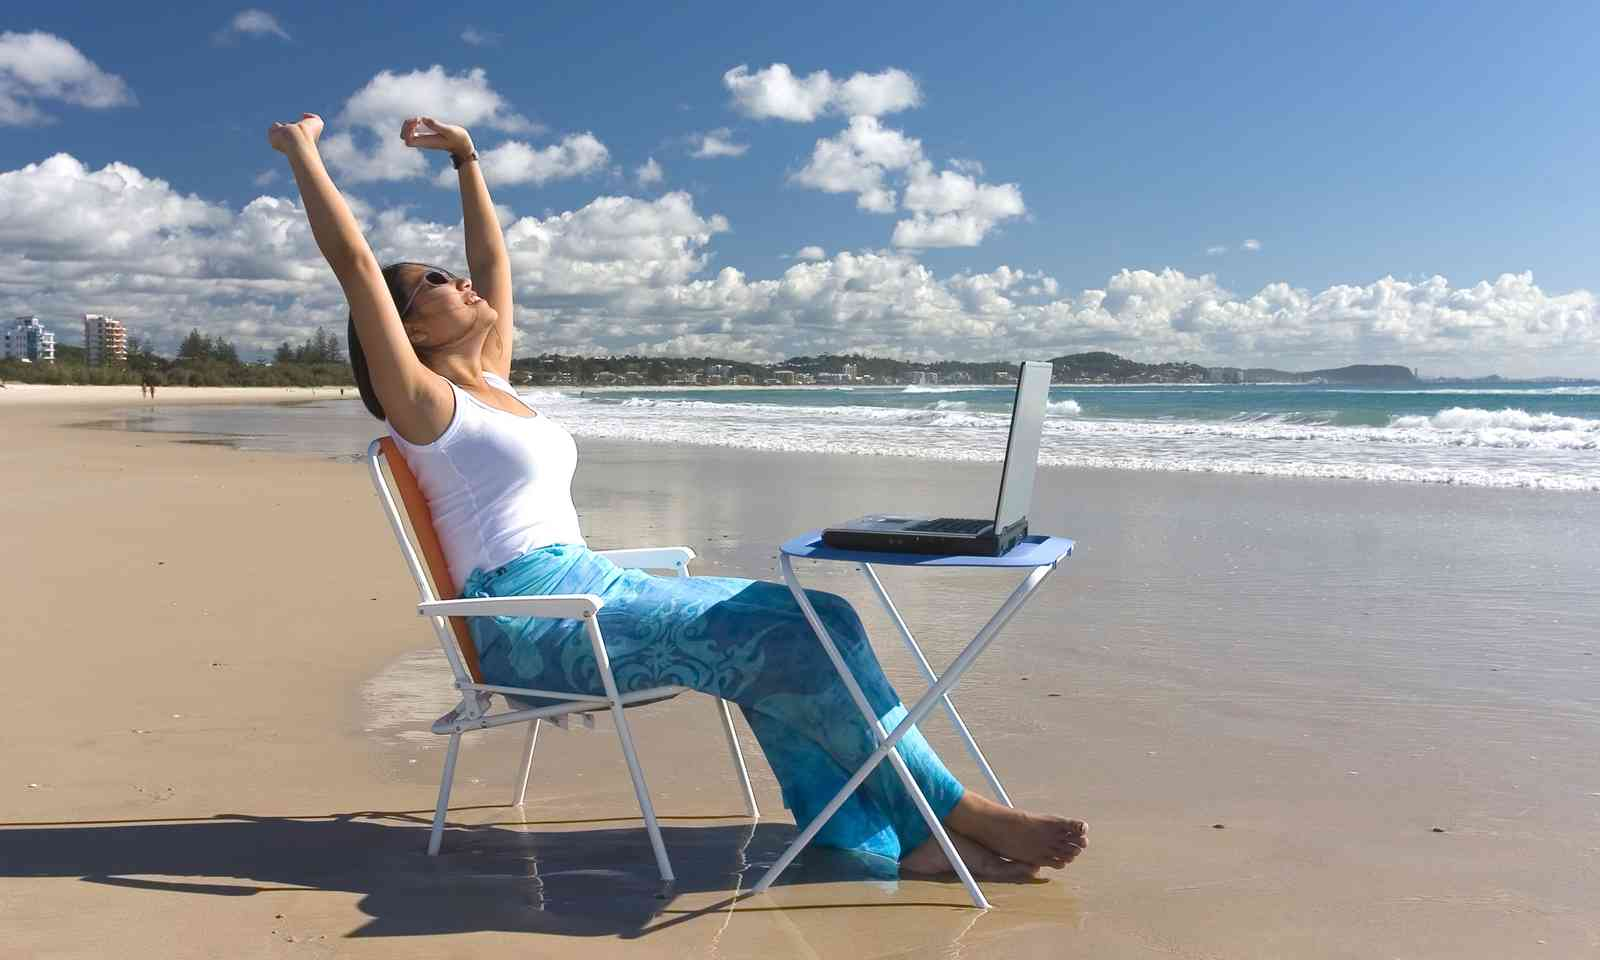 Working on the beach in Australia (Dreamstime)